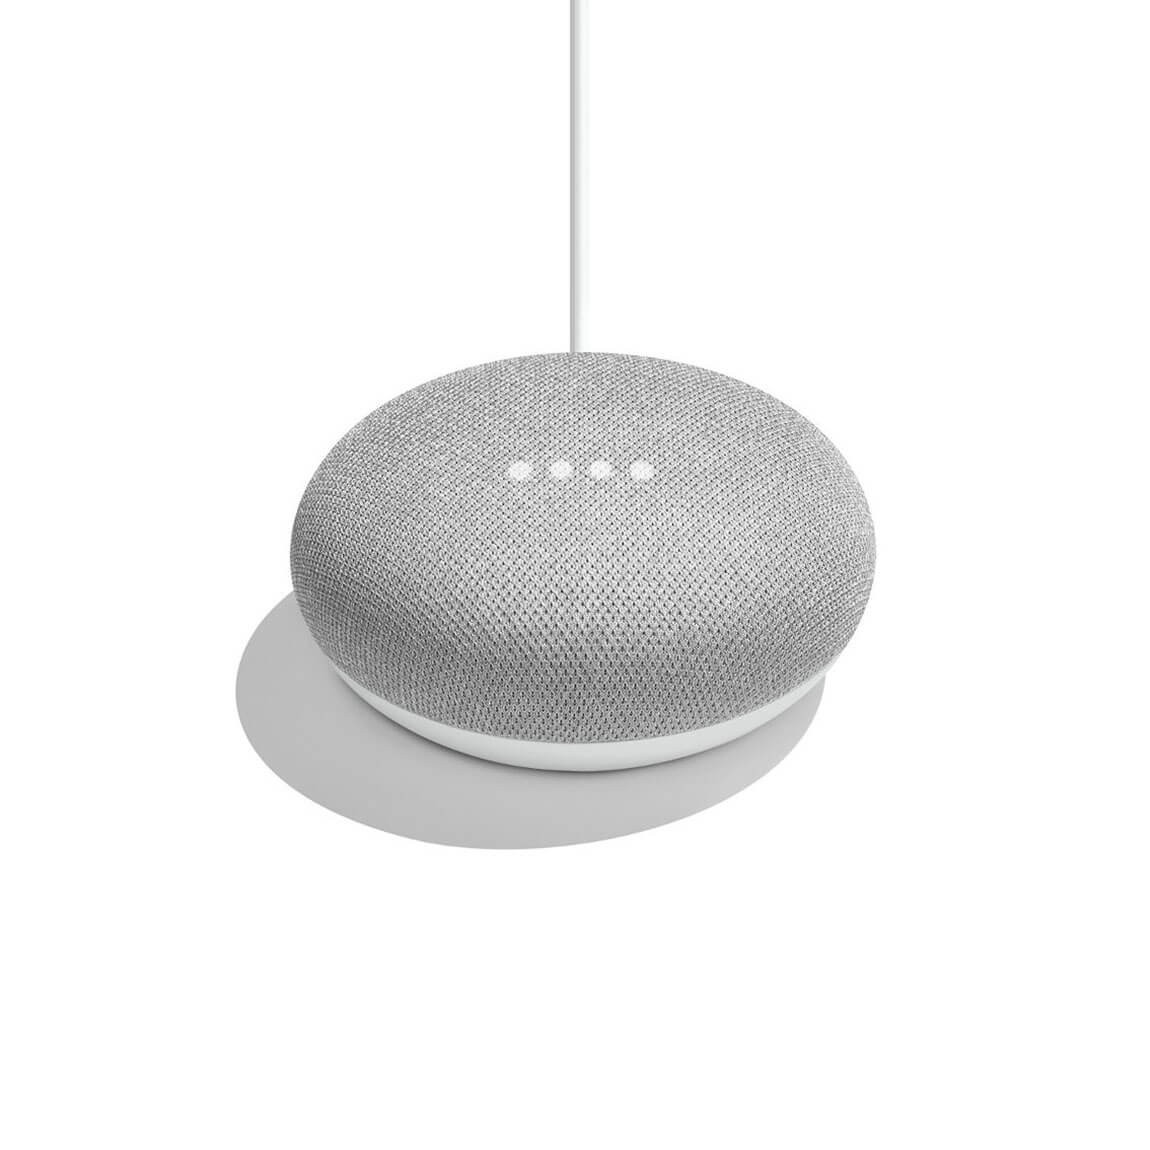 Google Home Mini Sprachassistent in hellgrau